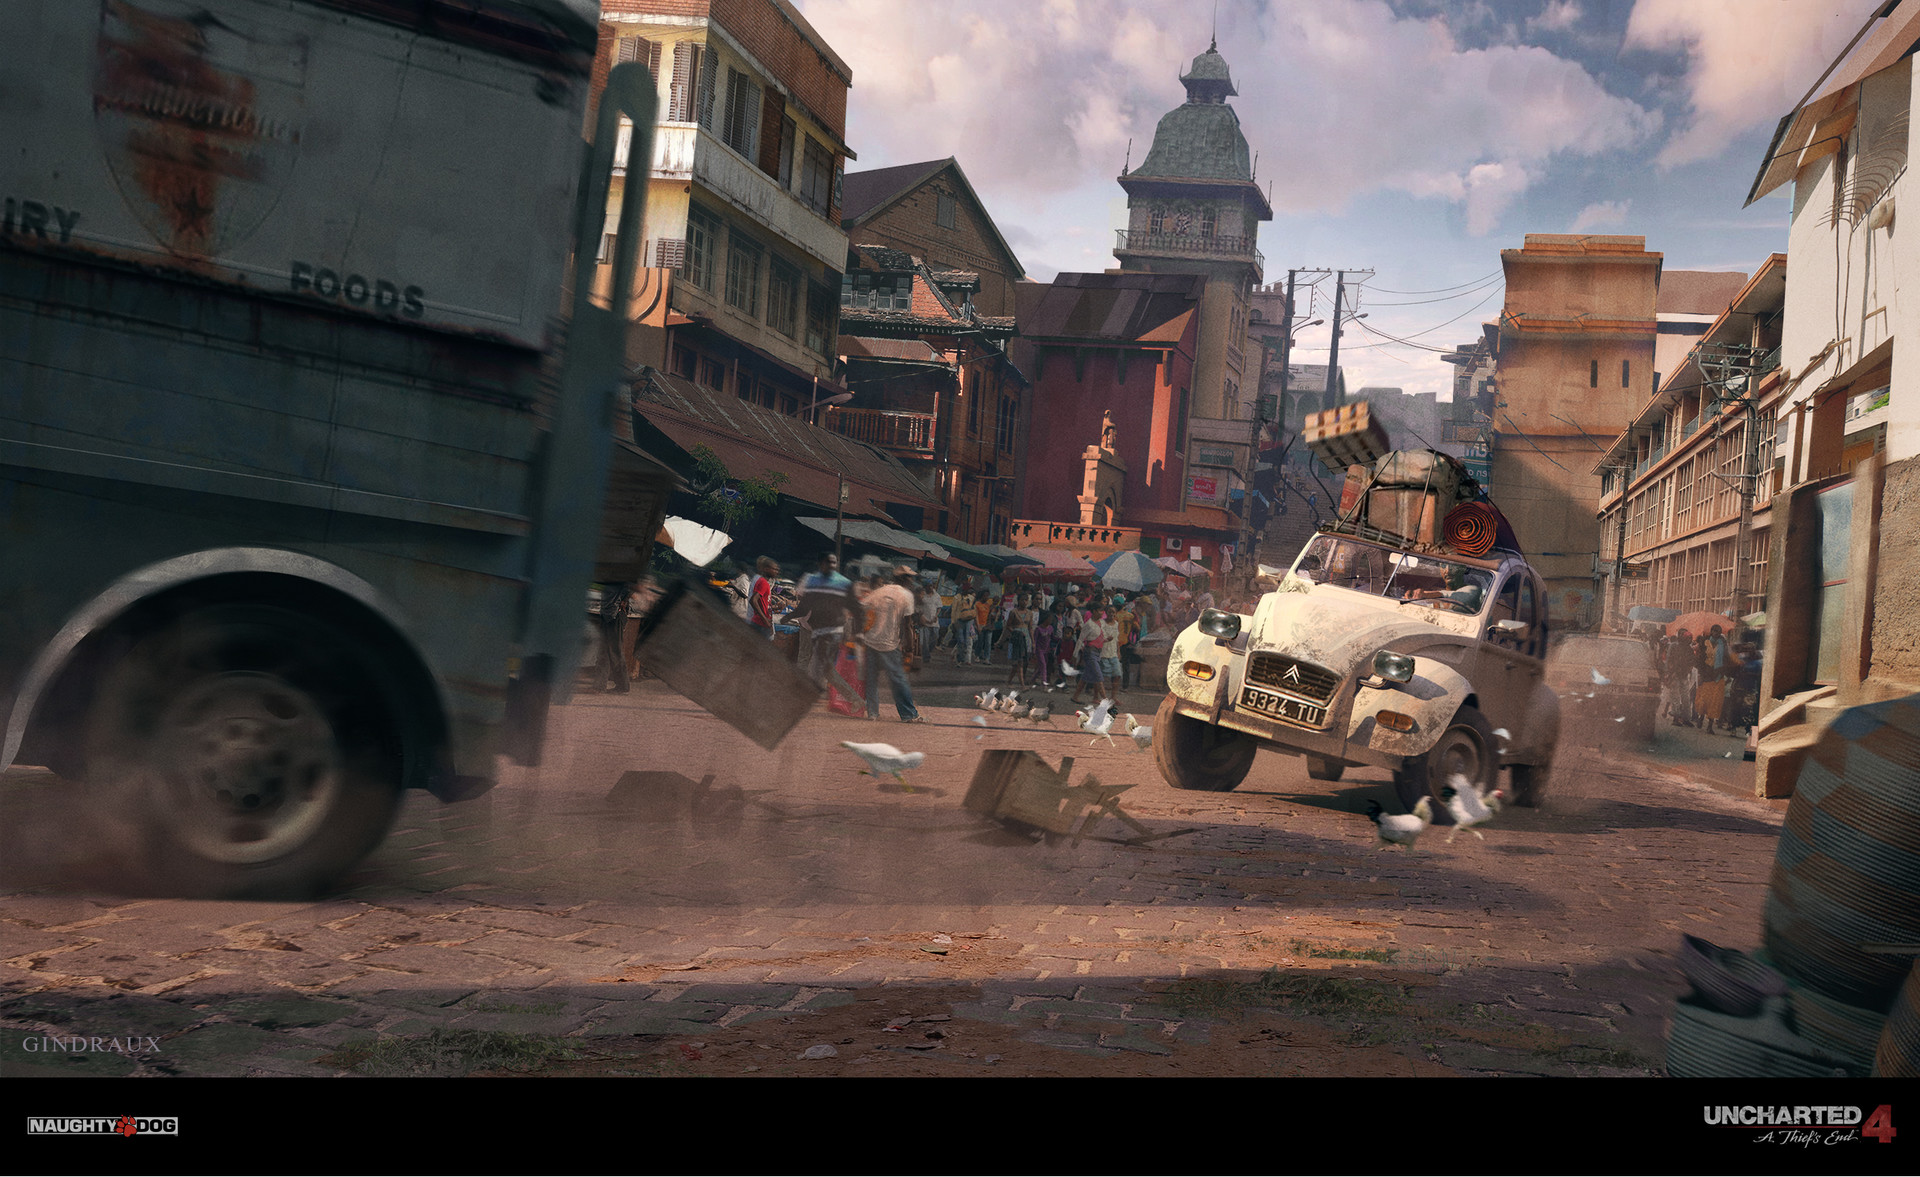 Nick Gindraux Uncharted 4 Car Chase